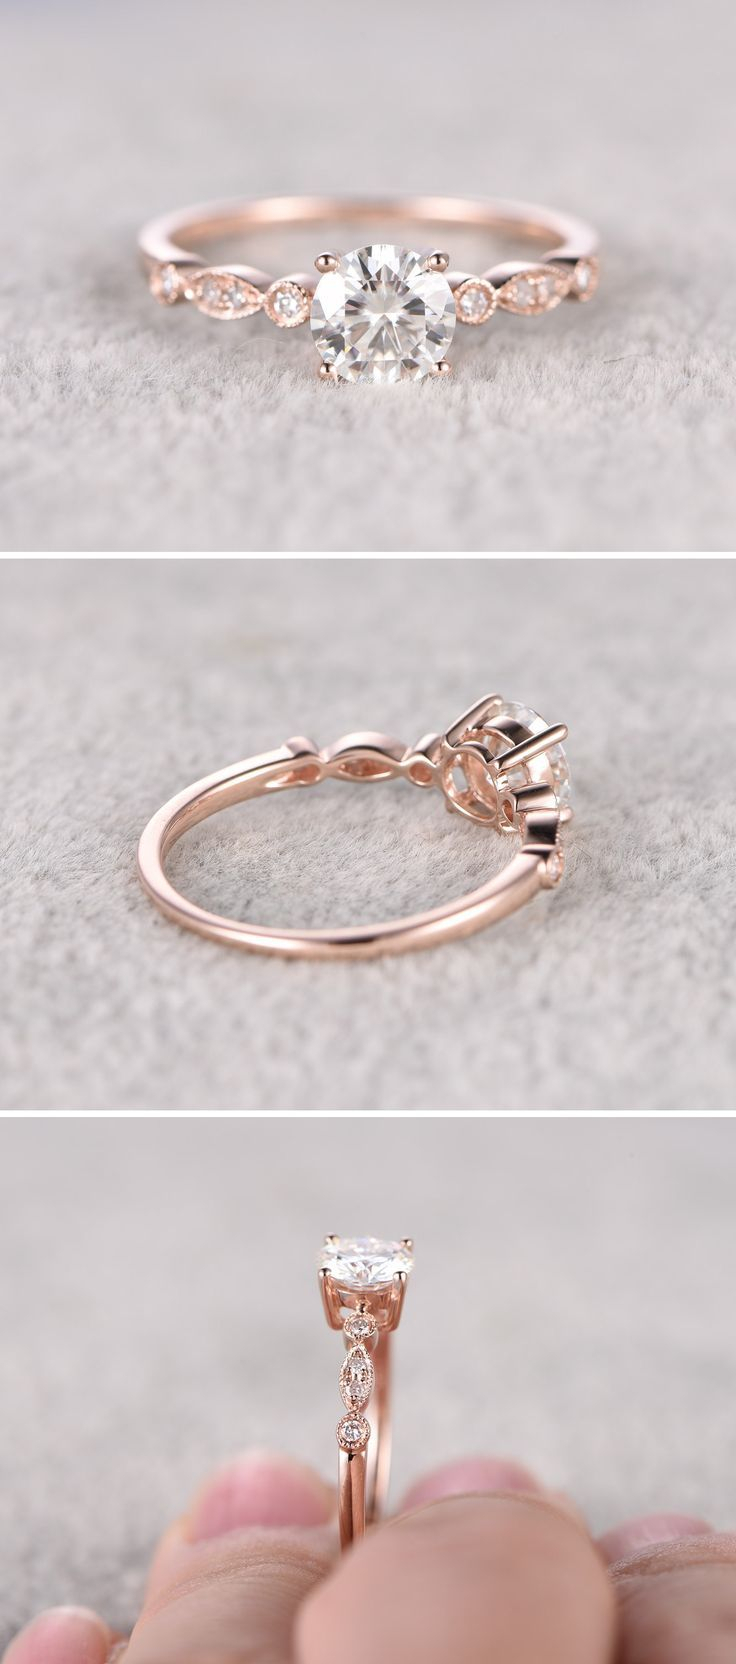 Engagement Ring Ideas | Rings | Wedding Rings Simple For Most Up To Date Princess Cut Single Diamond Wedding Bands In Rose Gold (View 14 of 25)